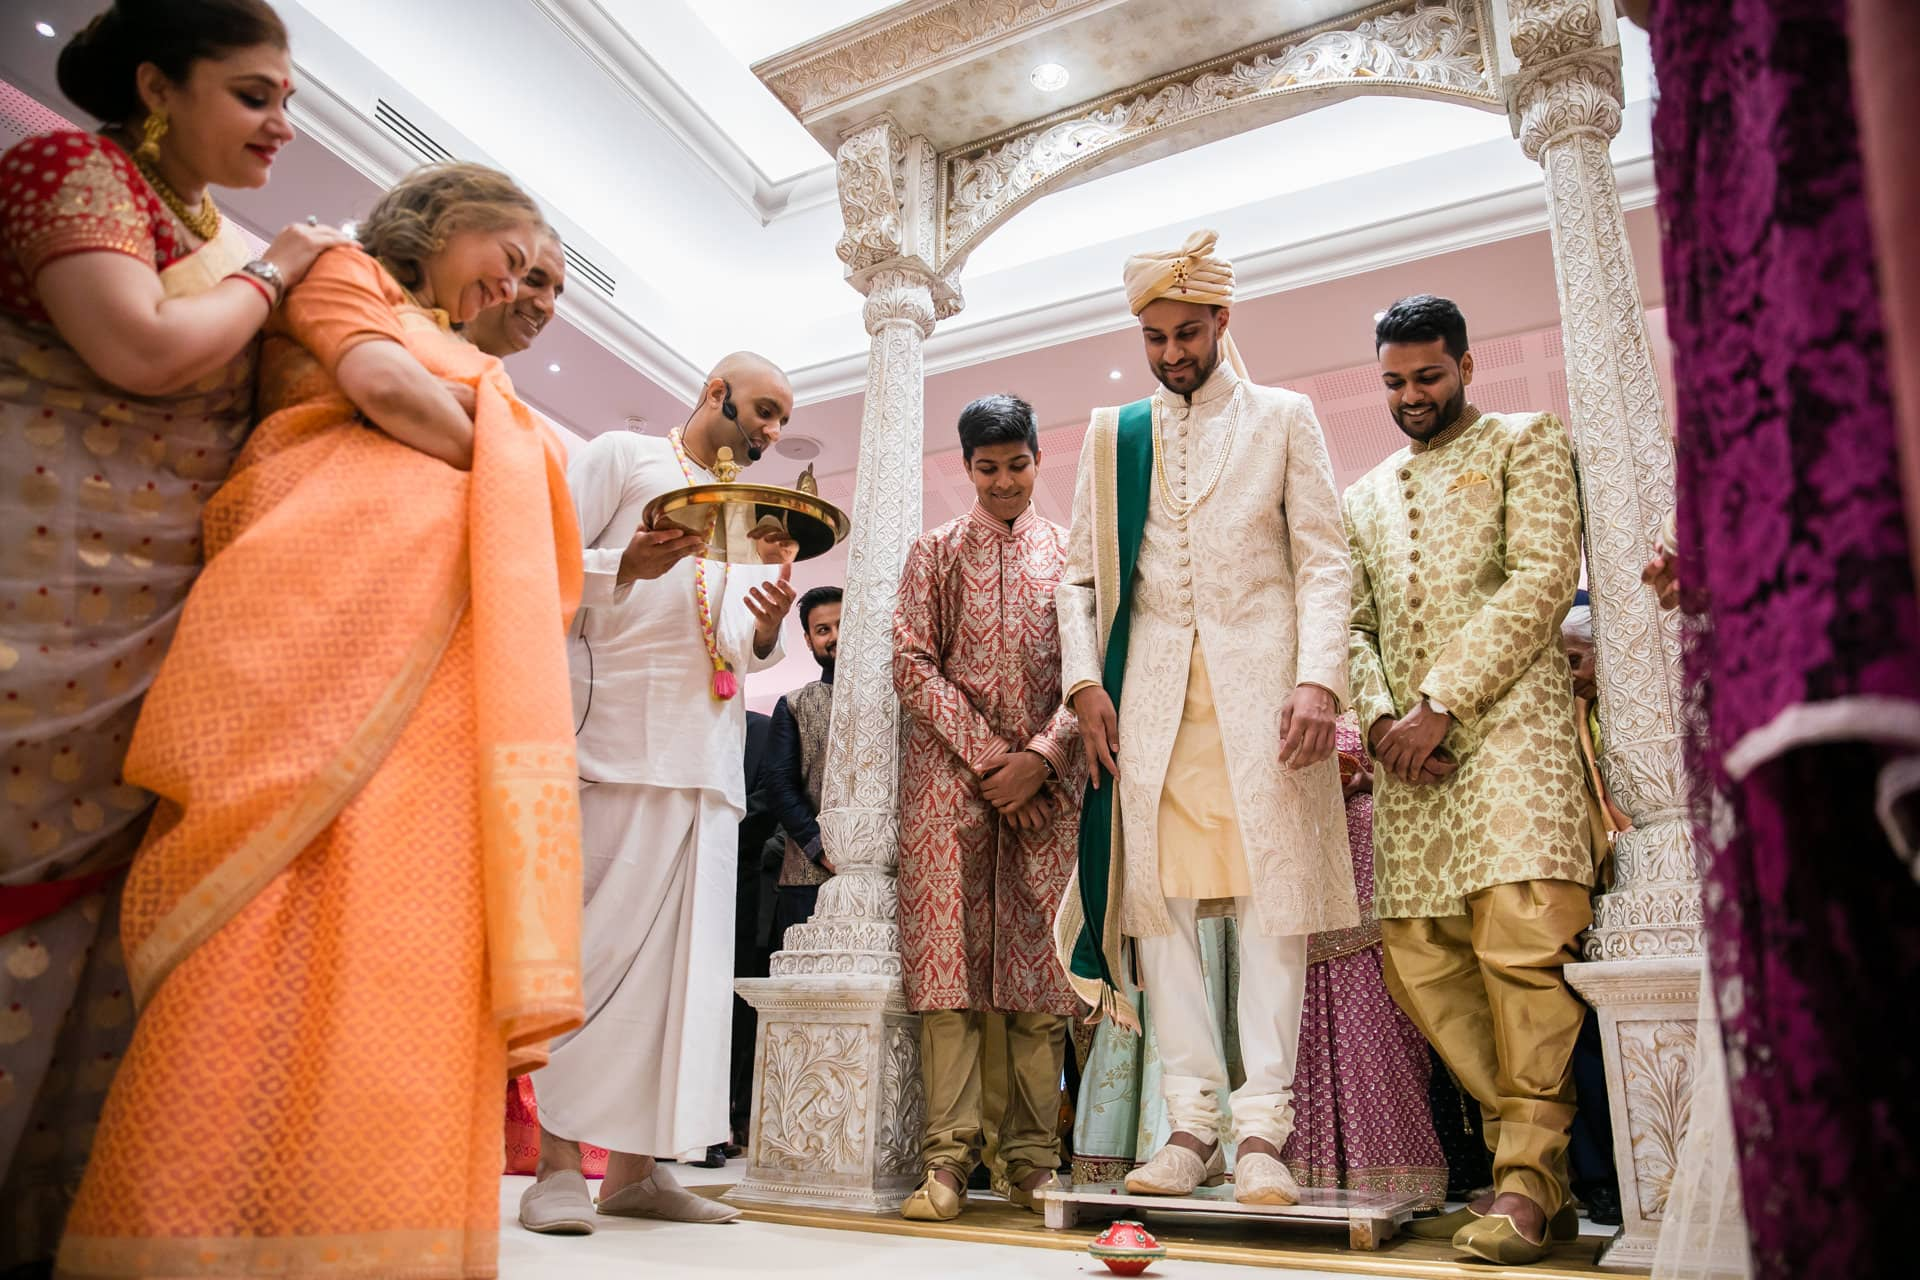 Asian wedding welcoming ceremony